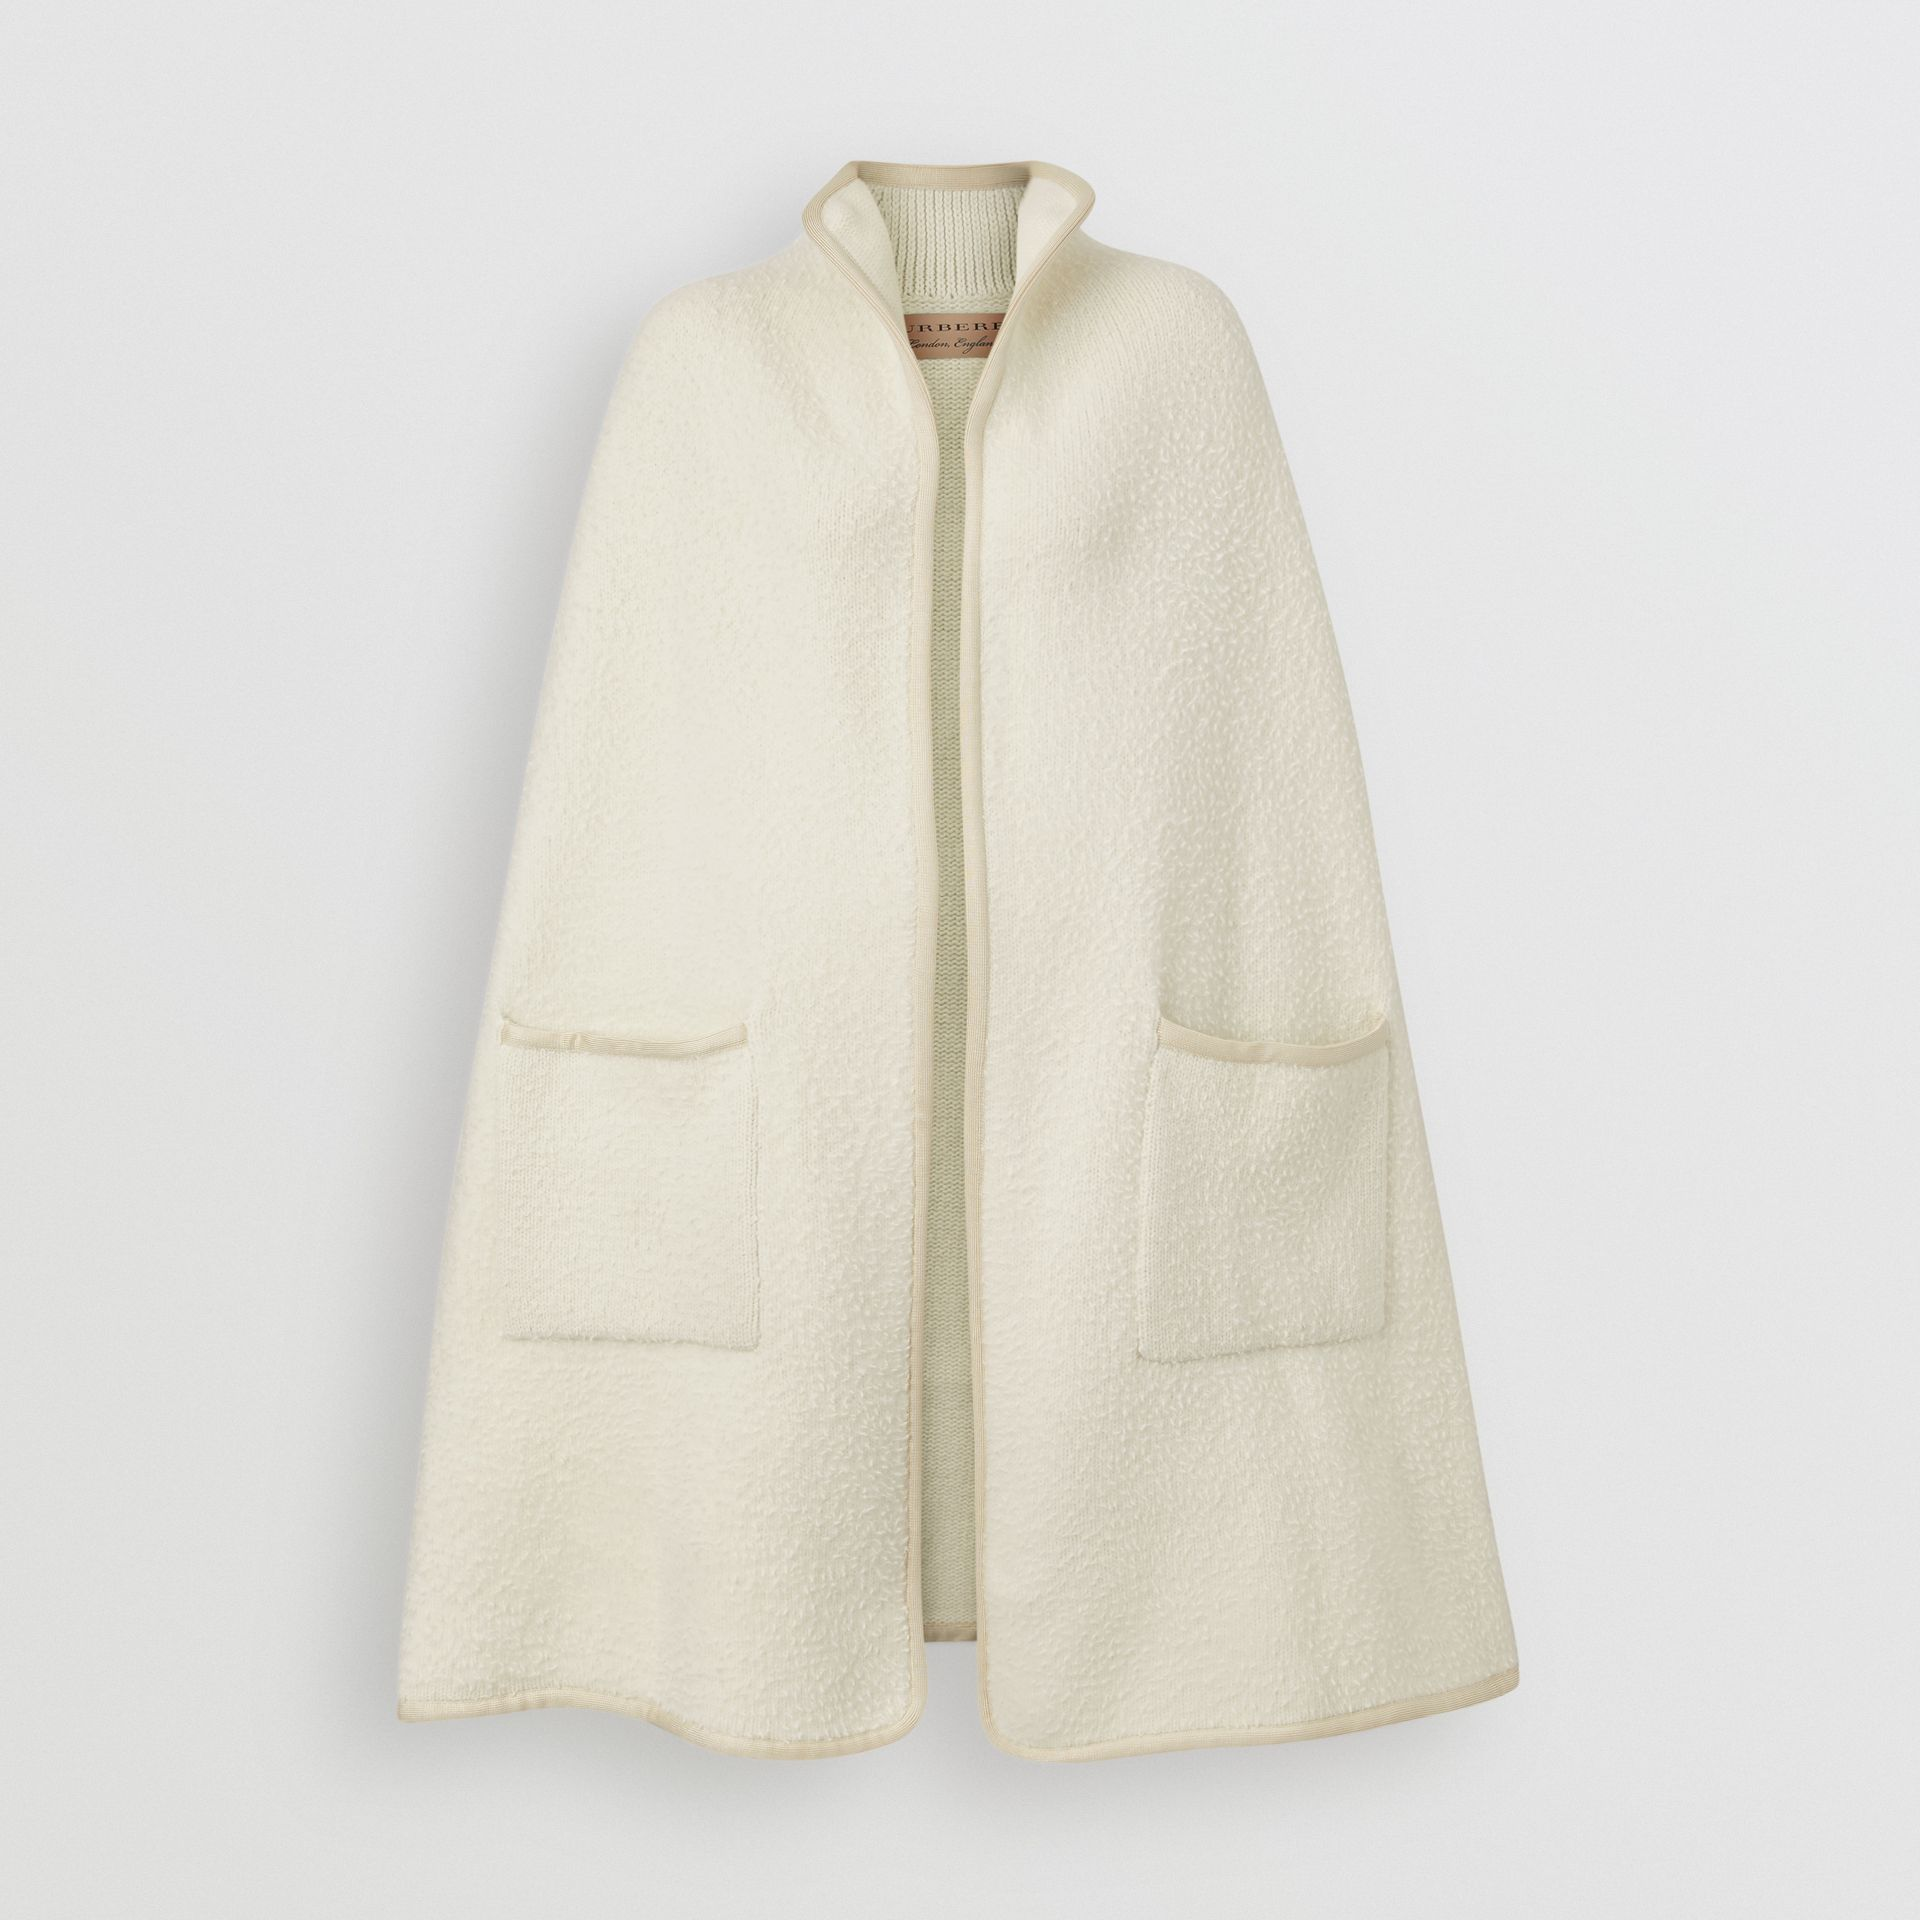 Wool Fleece Cape in Ivory - Women | Burberry Hong Kong - gallery image 3